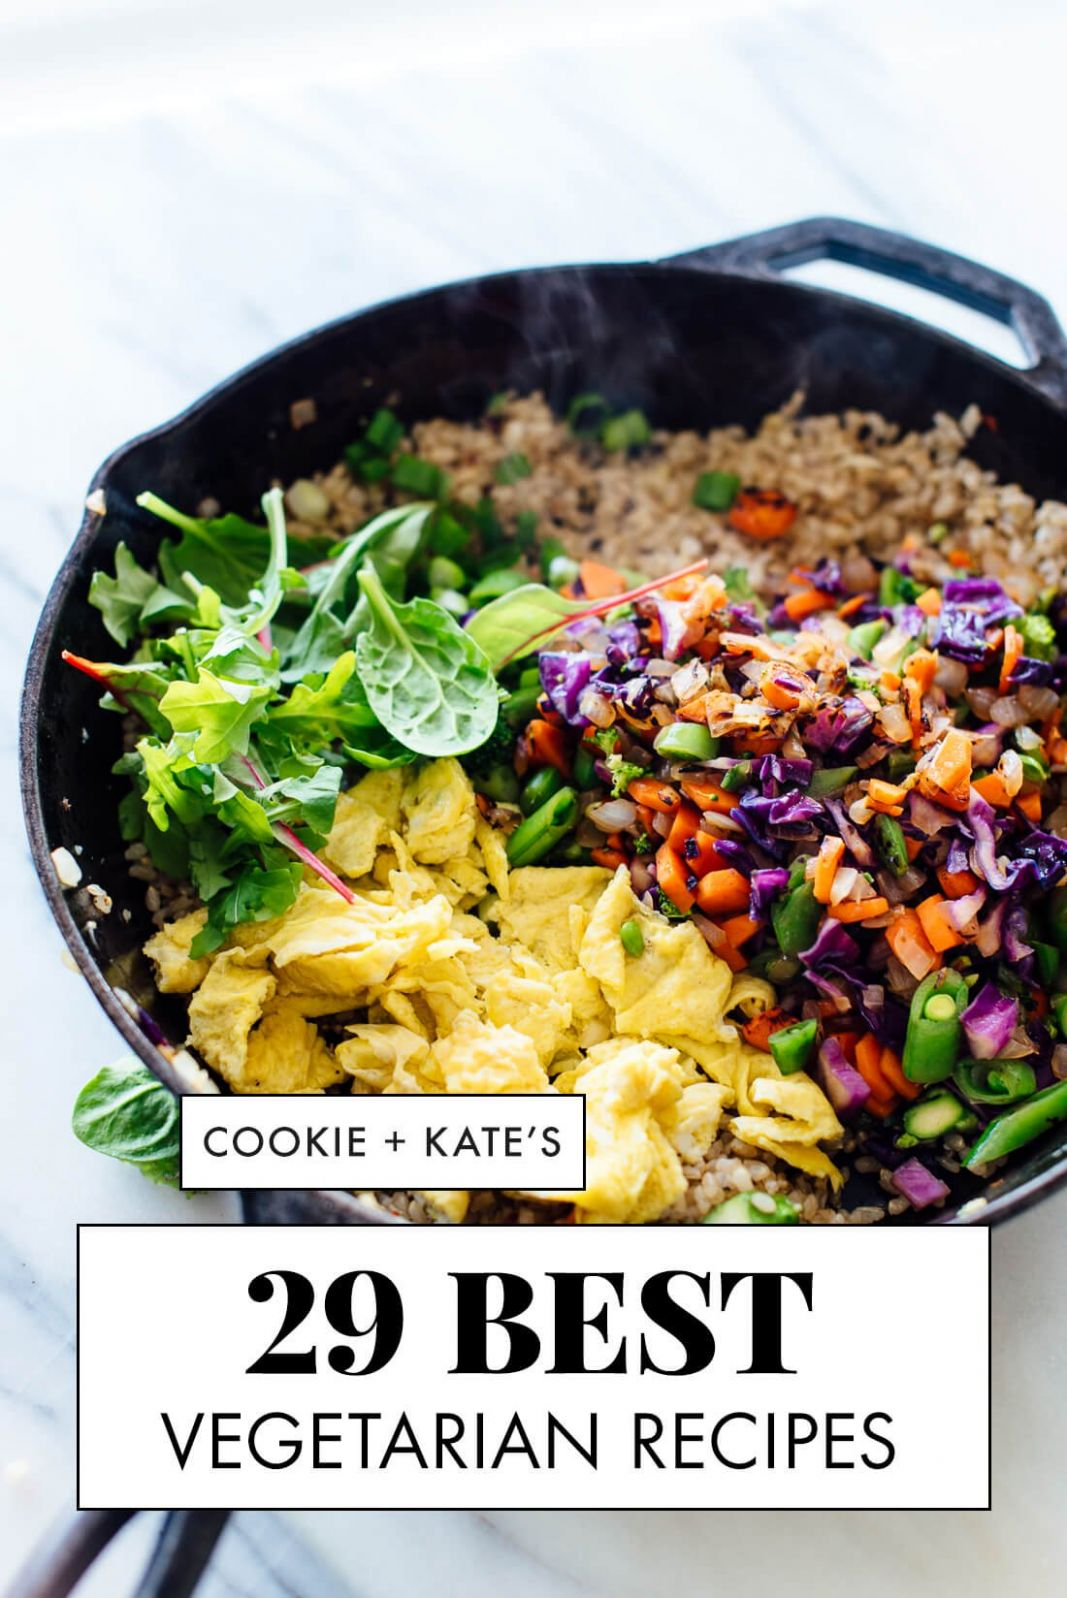 10 Best Vegetarian Recipes - Cookie and Kate - Recipes Vegetarian Main Dishes